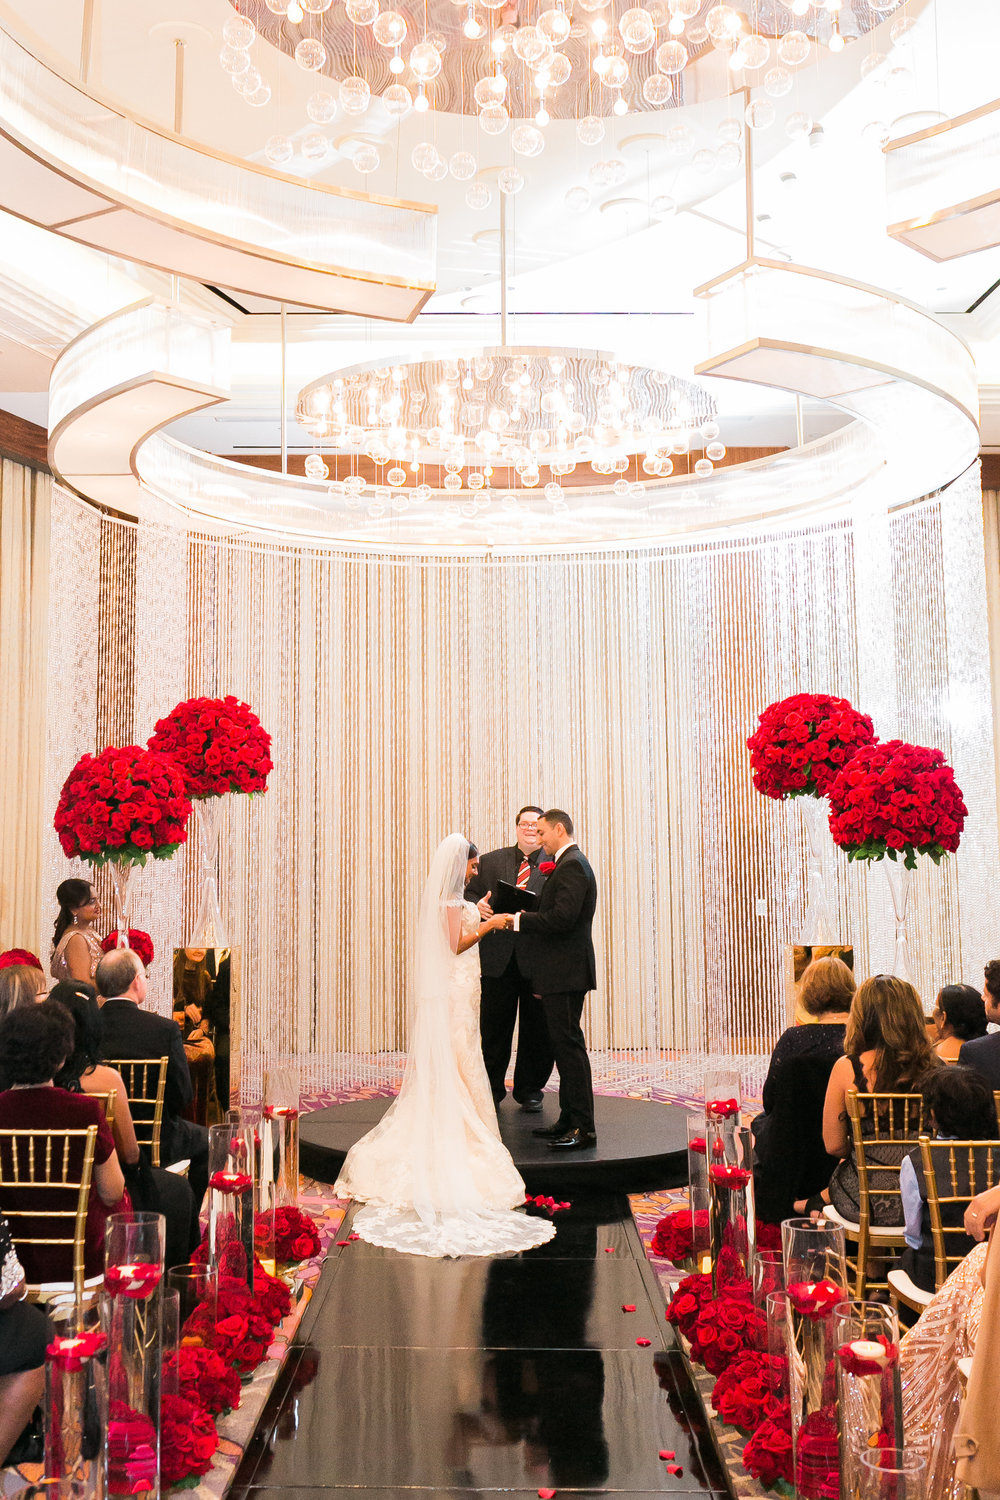 Wedding Vows.  Las Vegas Wedding Planner Andrea Eppolito shares this multicultural wedding.  Photo by J.Anne Photography. Wedding at Mandarin Oriental Las Vegas.  Decor by DBD Vegas.